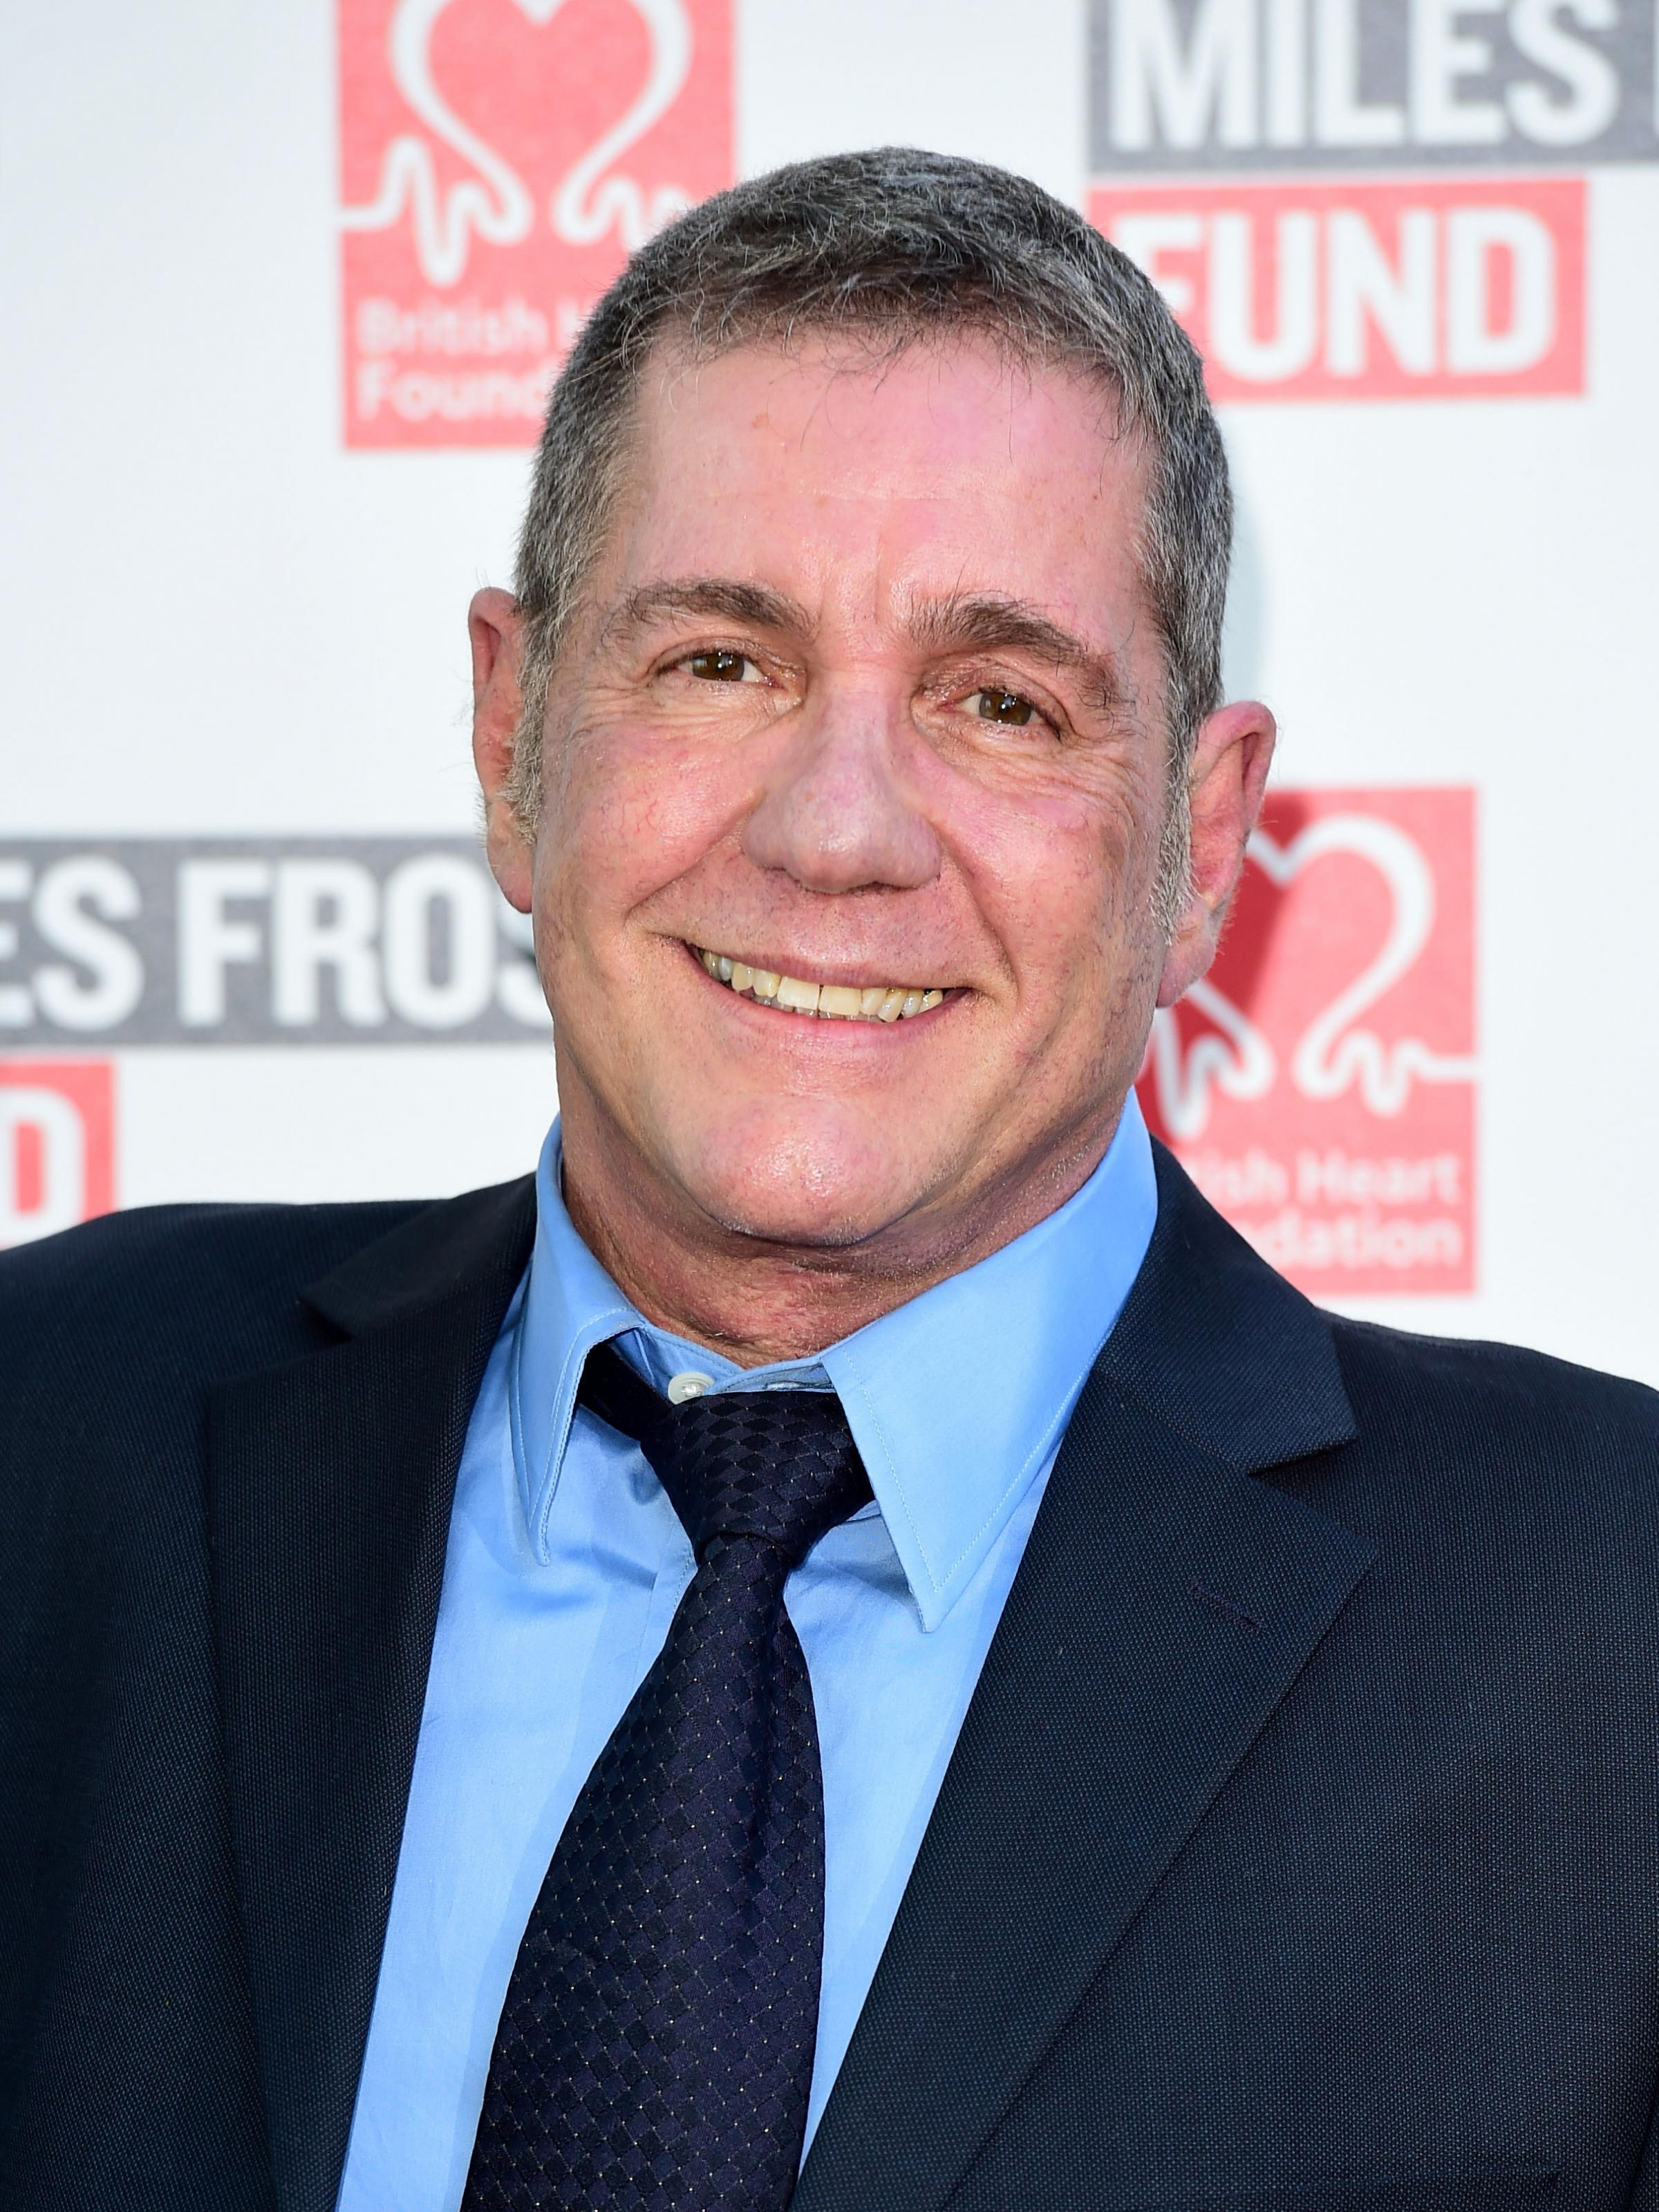 File photo dated 18/07/16 of Dale Winton attending the Frost Summer Party Fundraiser in London. The presenter has died at the age of 62, his agent has said. PRESS ASSOCIATION Photo. Issue date: Thursday April 19, 2018. See PA story DEATH Winton. Photo cre